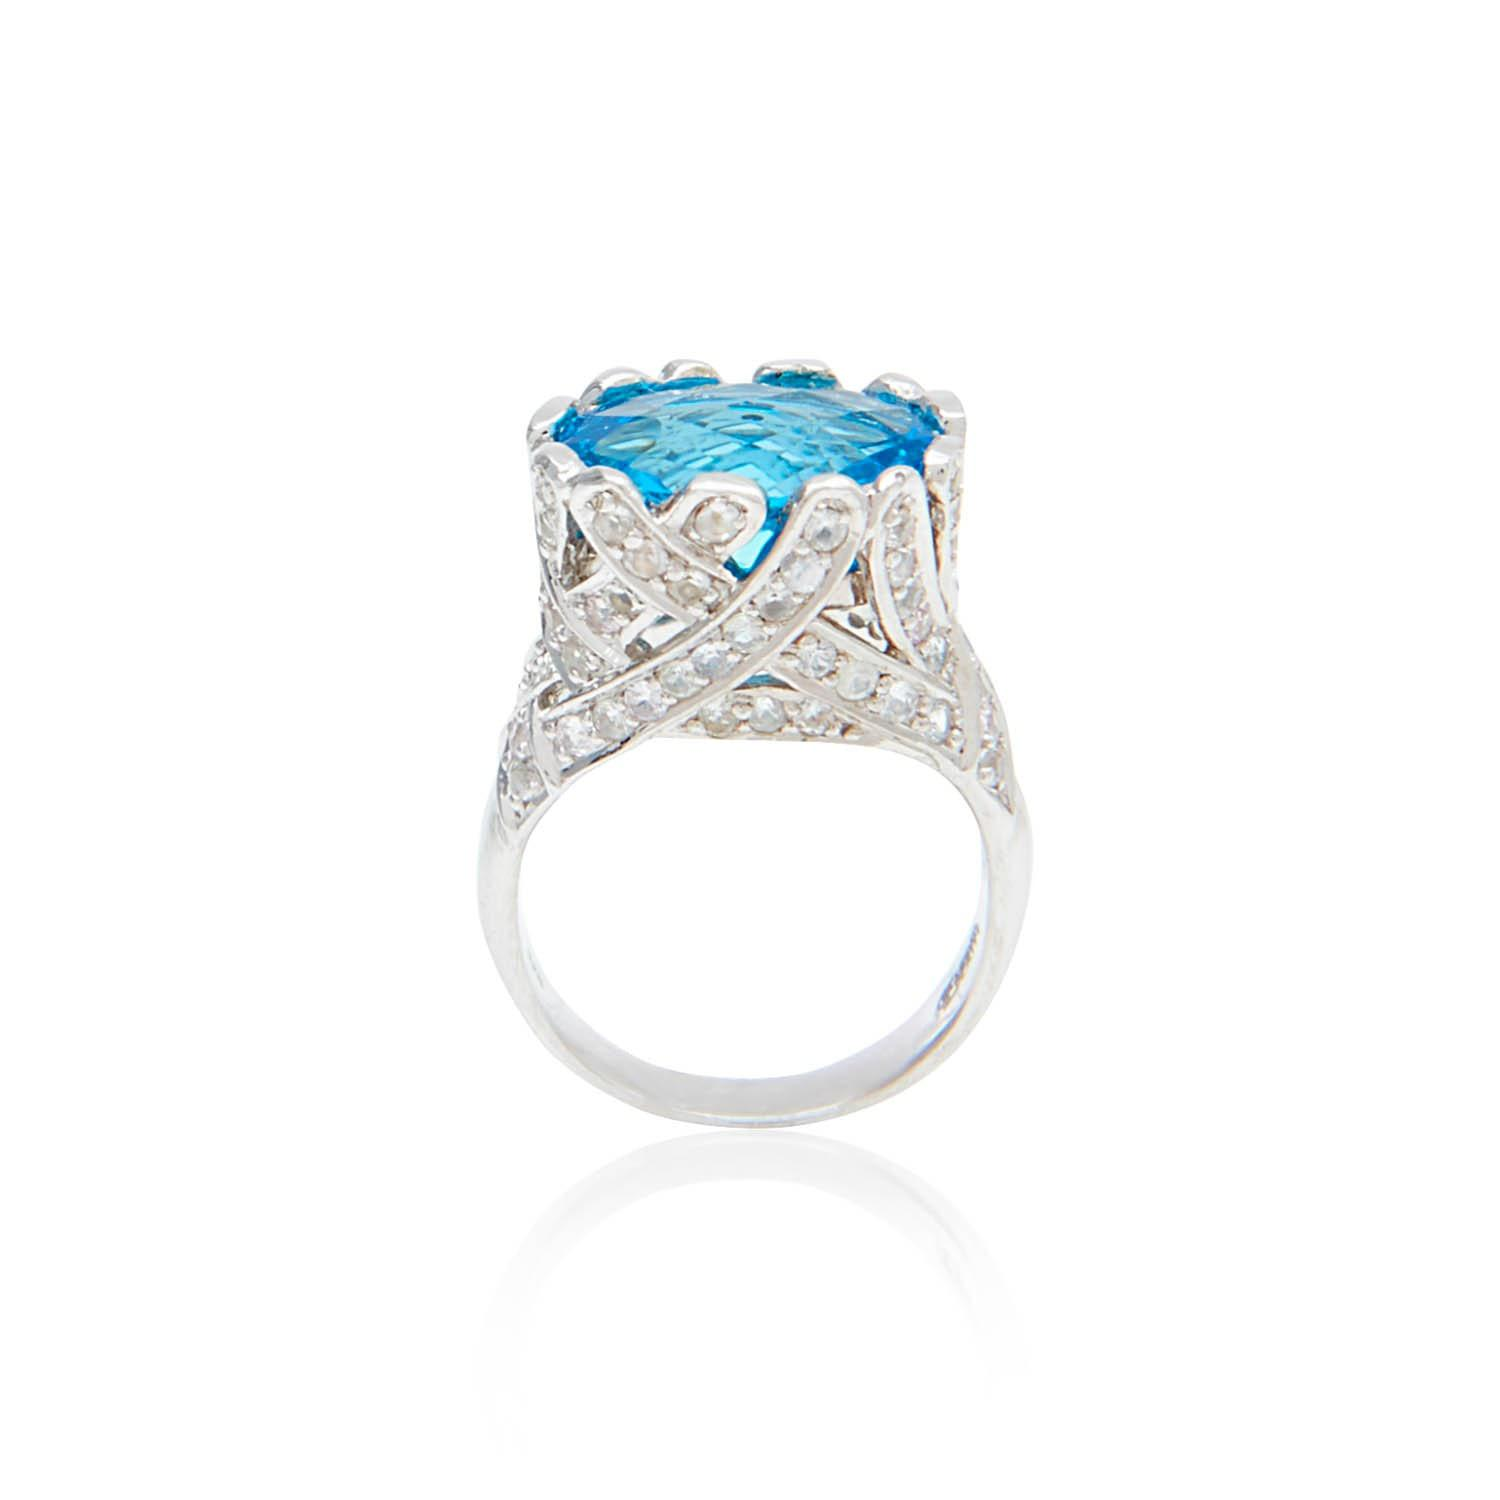 Alexandra Alberta Pixie Princess Ring - UK L - US 5 1/2 - EU 51 3/4 Yc6evpUSQA